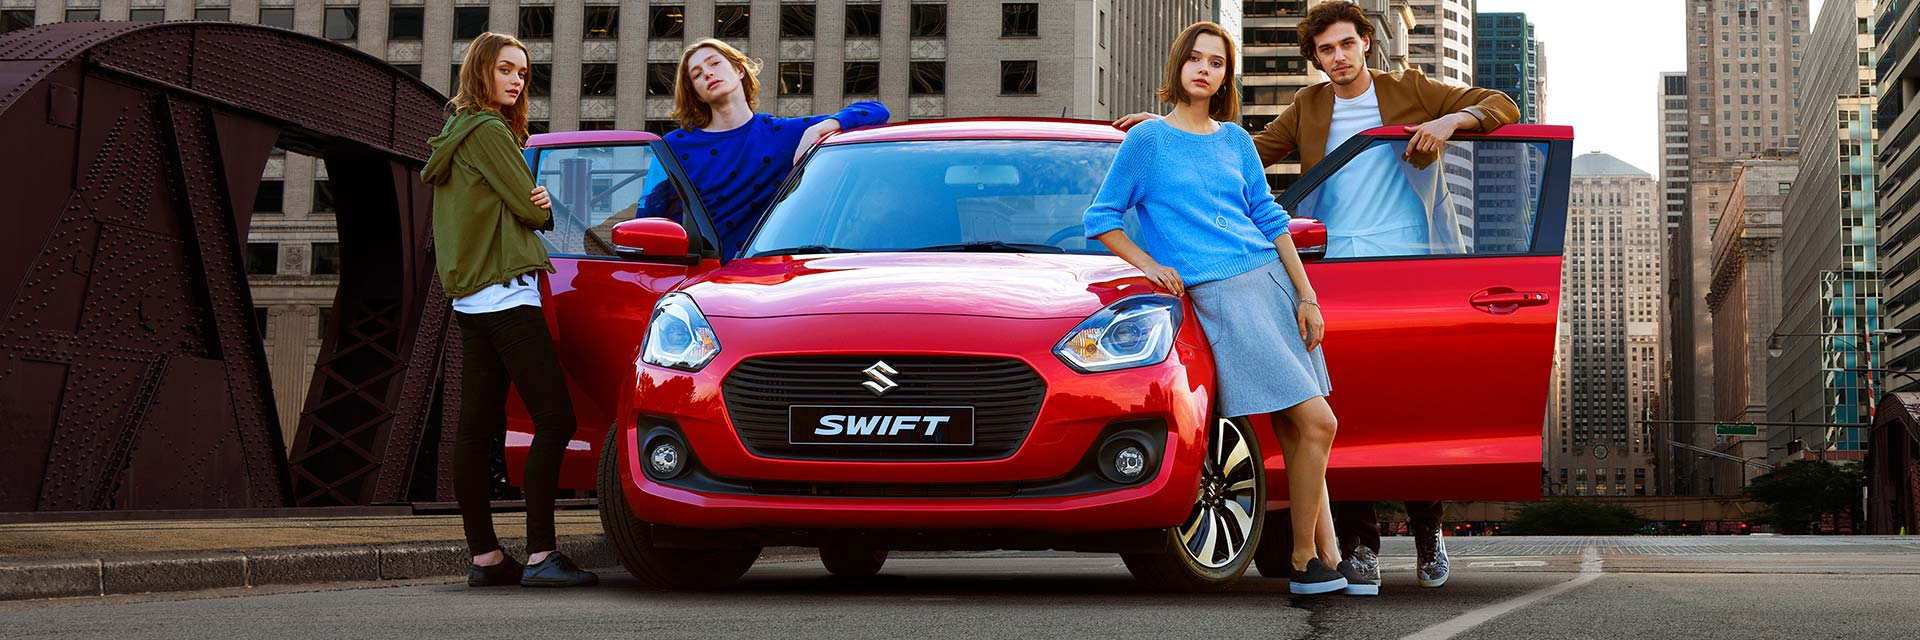 Swift The bold evolution of the Swift's DNA.